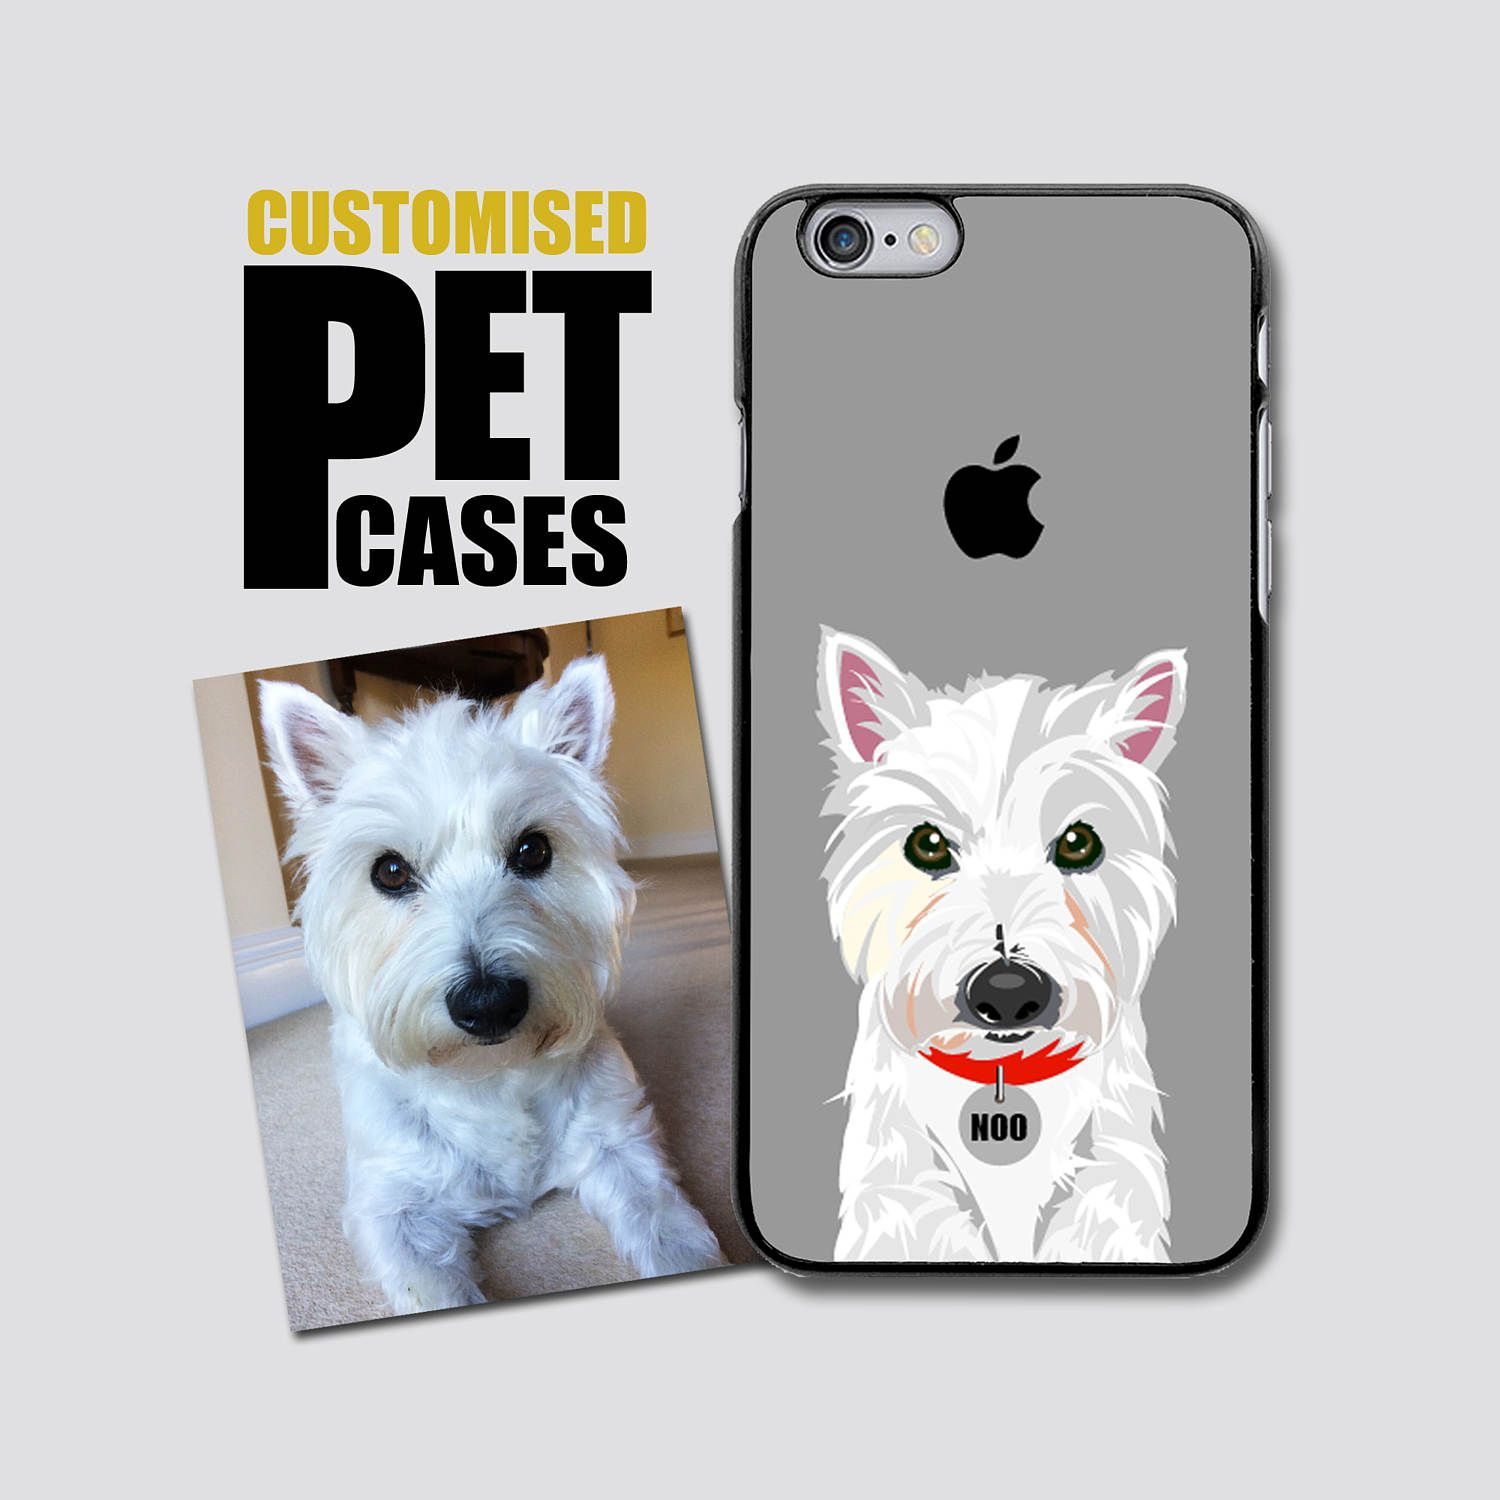 Custom Pet Phone Case - Customised Dog iPhone 5/5S/SE - iPhone 5C - iPhone 6/6S  iPhone 7/7 PLUS - Customized Dog Phone Case by Applepigdesigns on Etsy